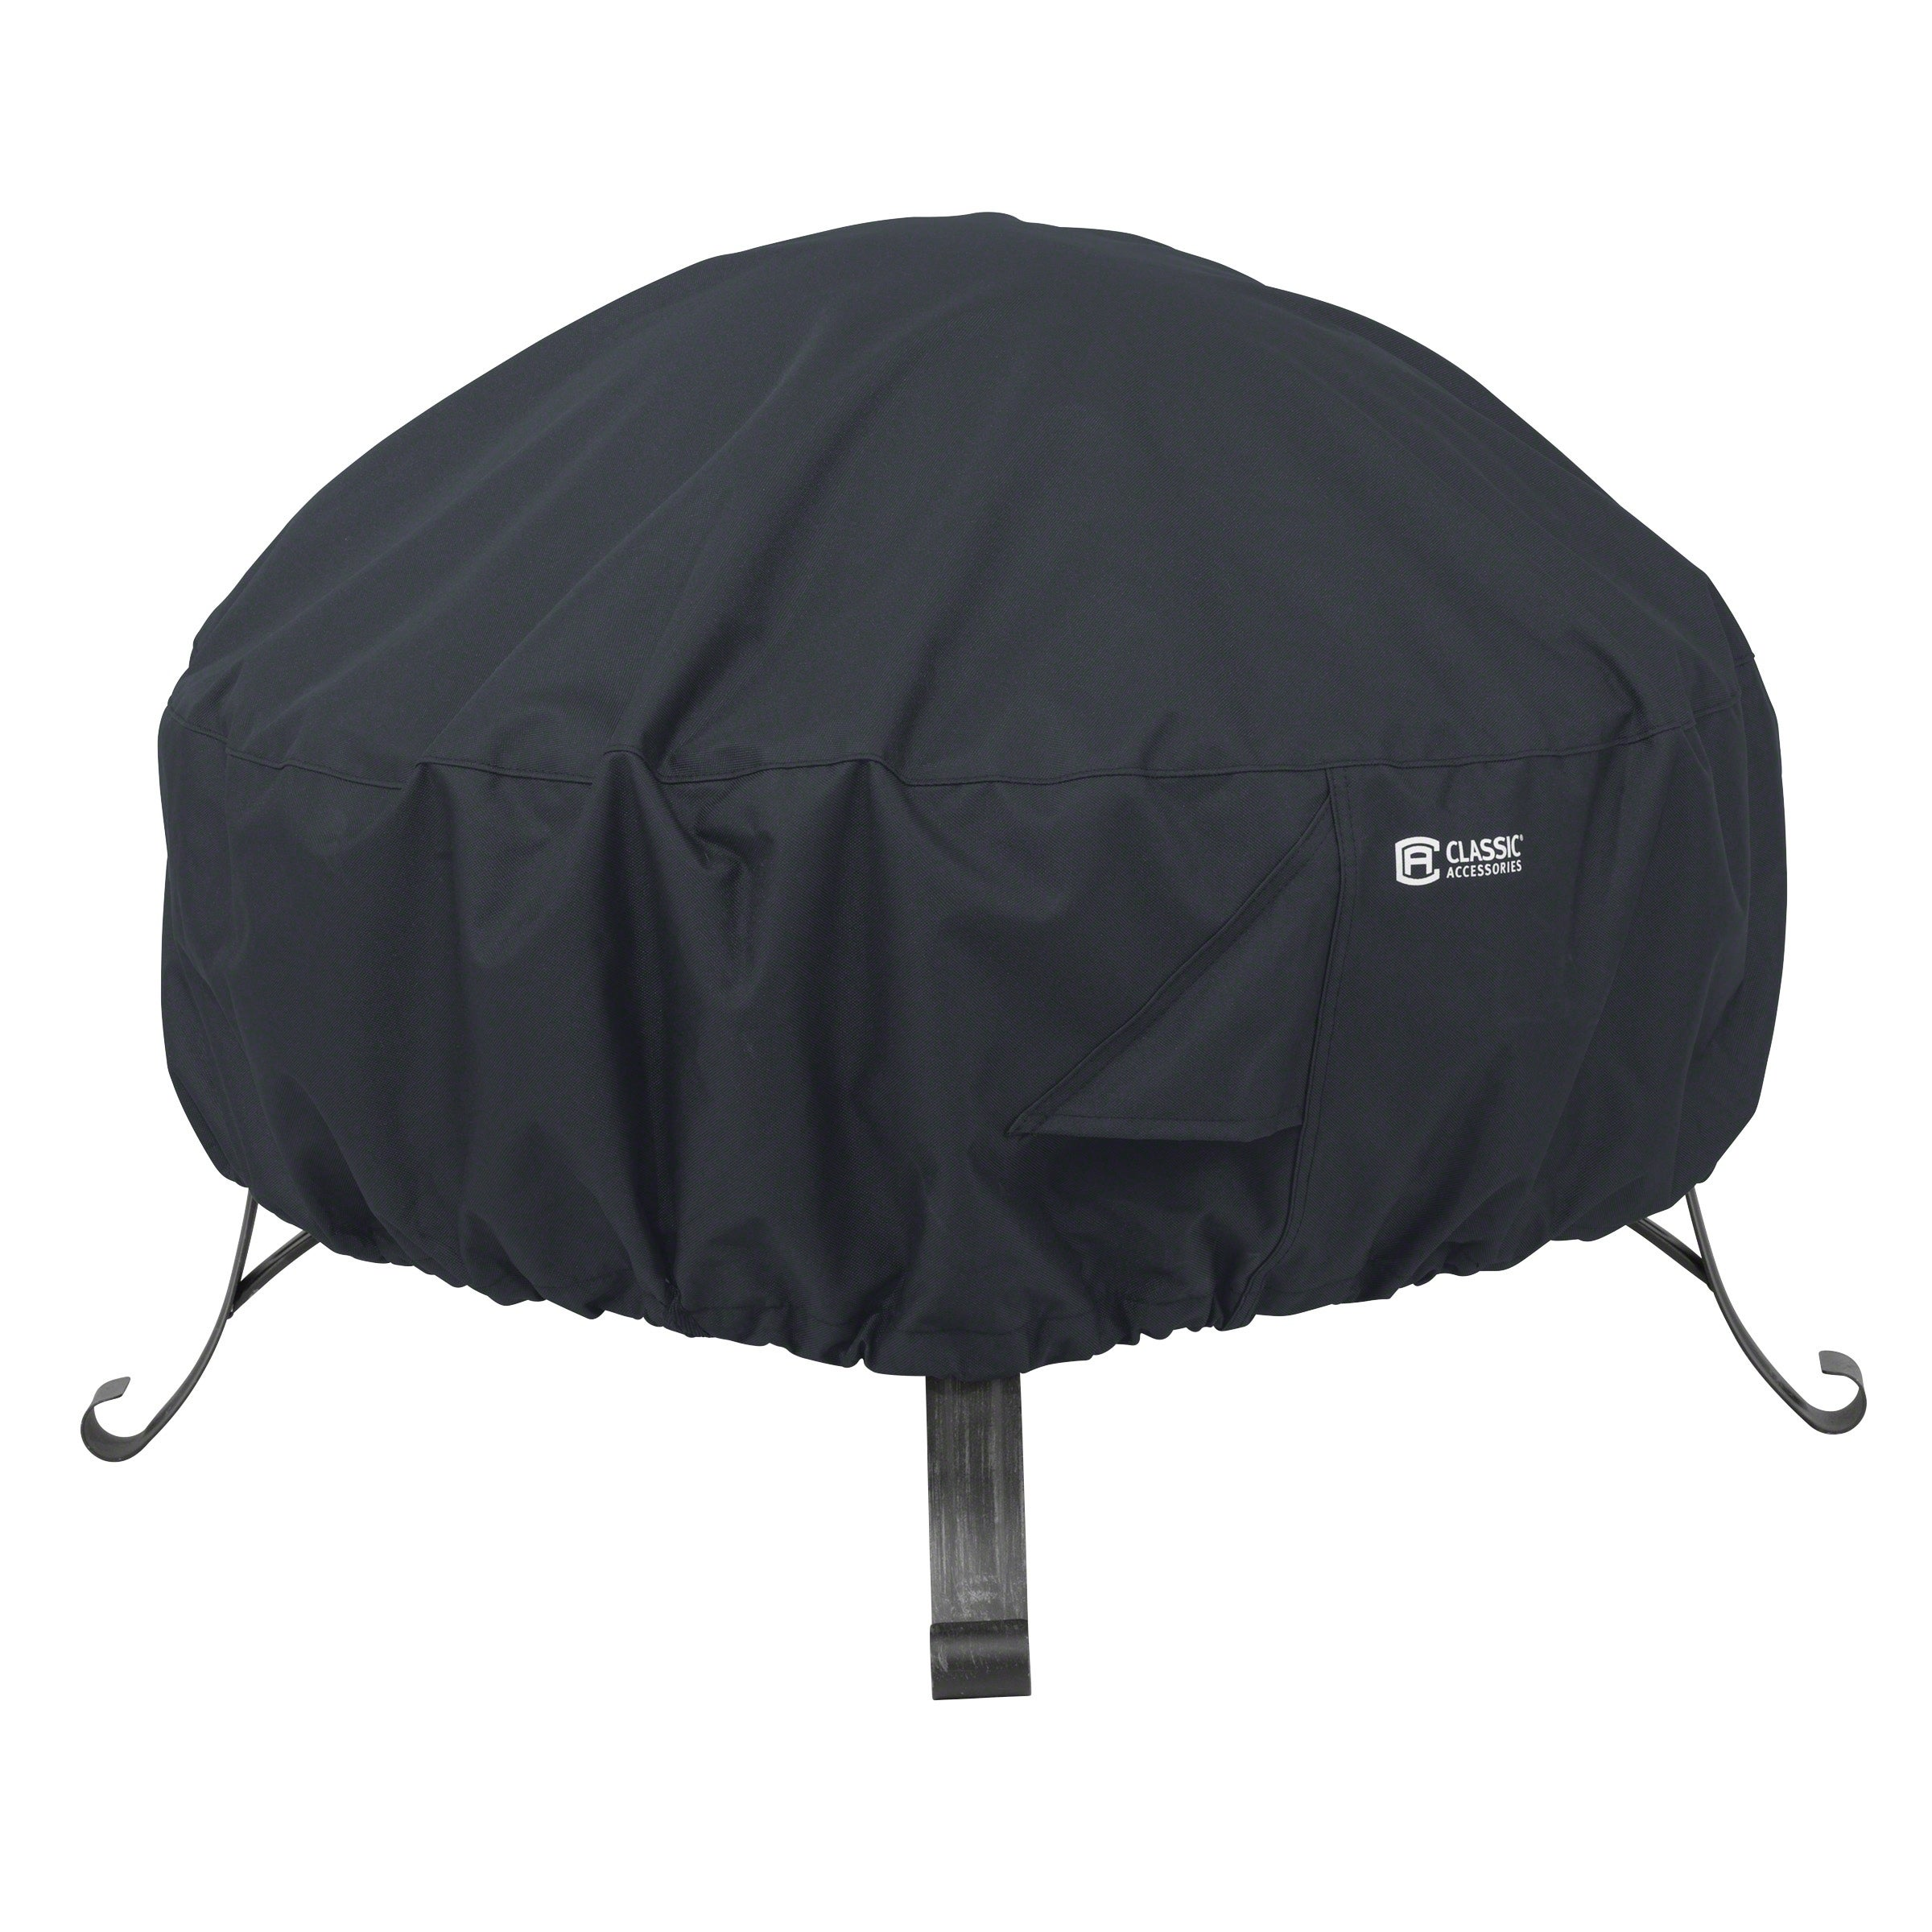 Classic Accessories Water-Resistant 30 Inch Full Coverage Round Fire Pit Cover